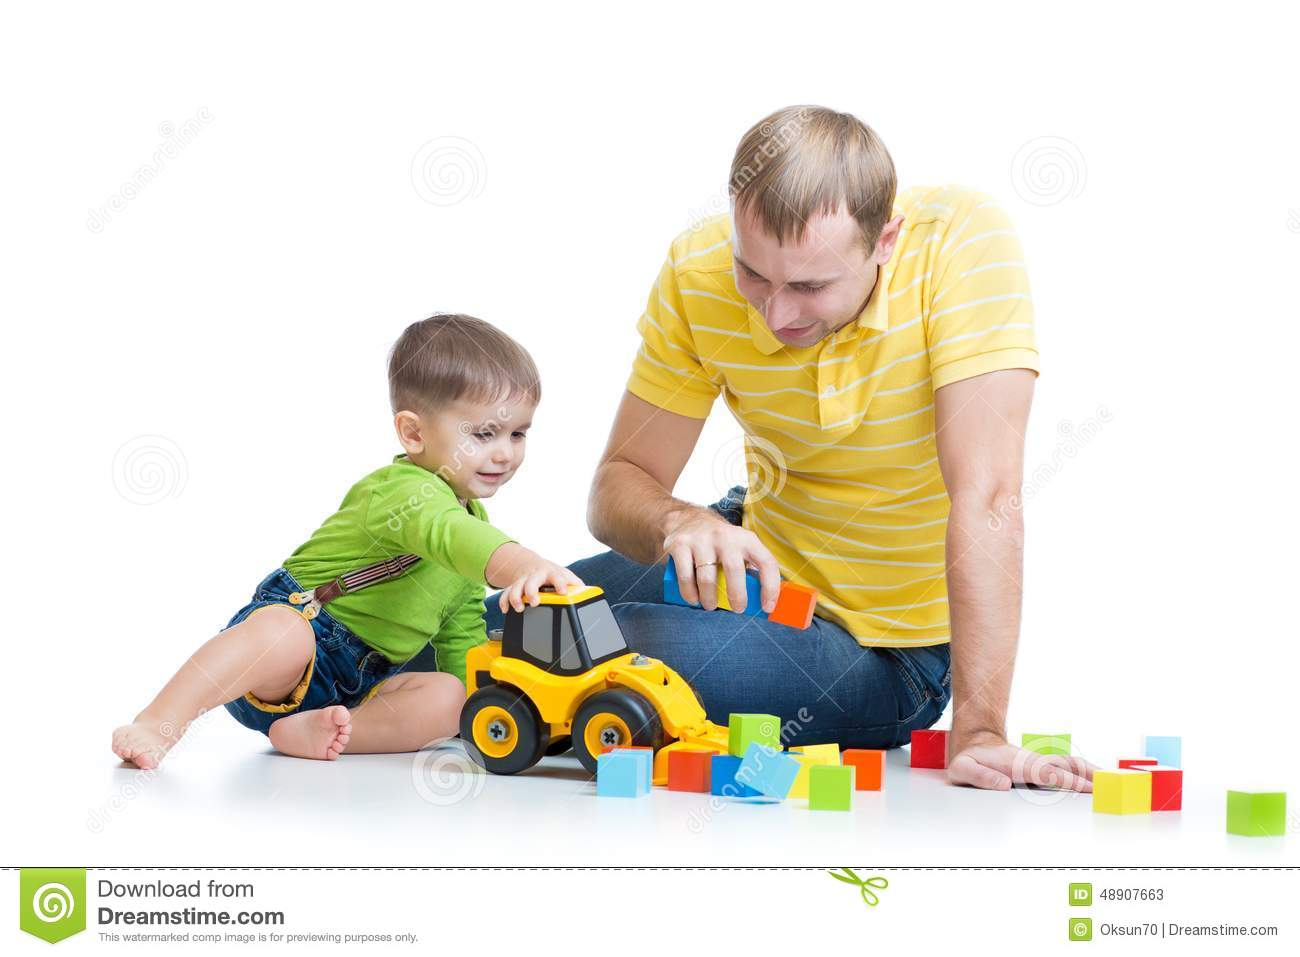 Boy Toys For Dads : Toddler boy and his father repair toy tractor stock photo